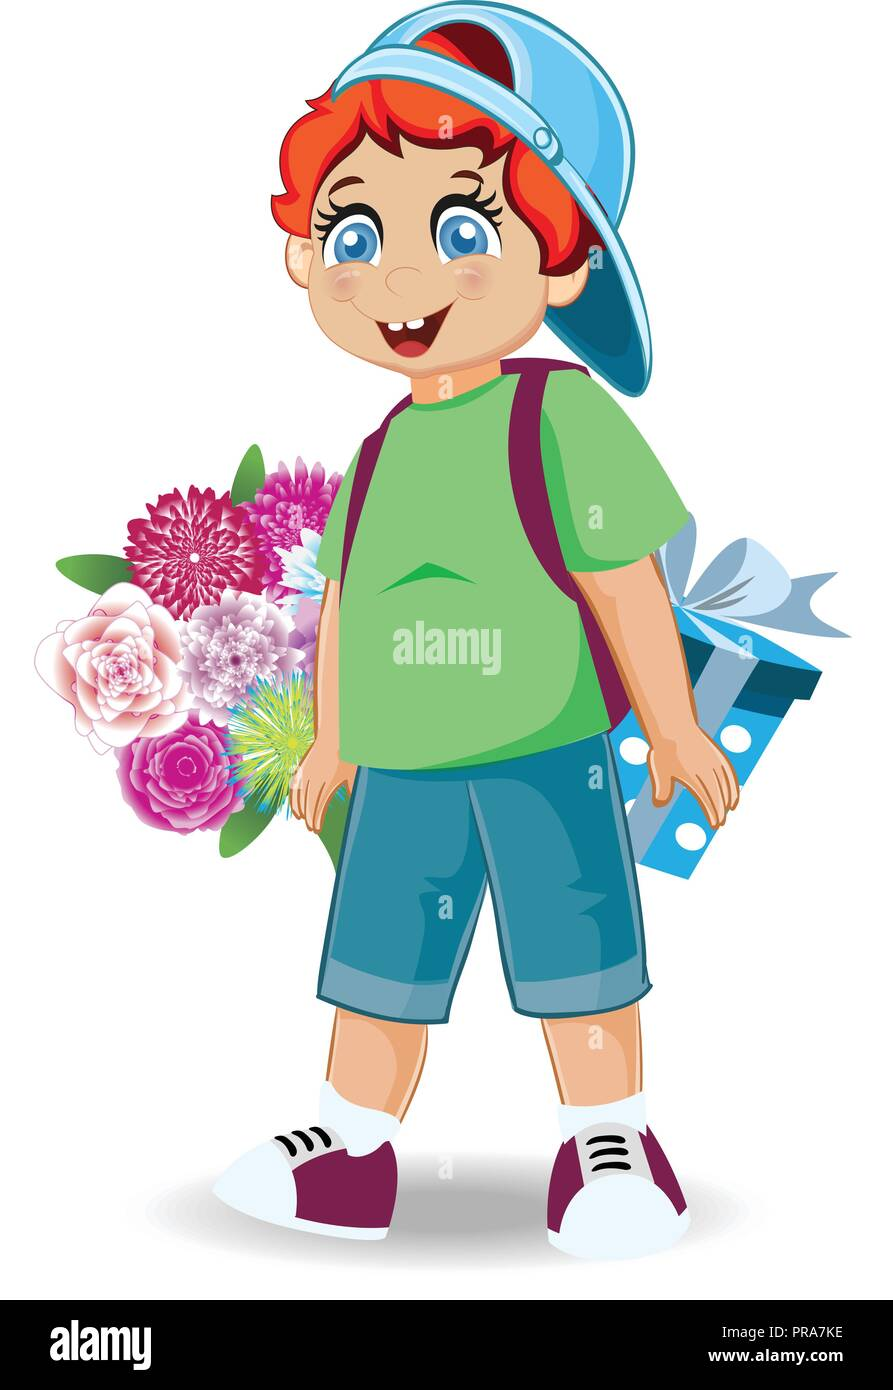 Vector Illustration Of Cute Little Boy With Flowers And Present